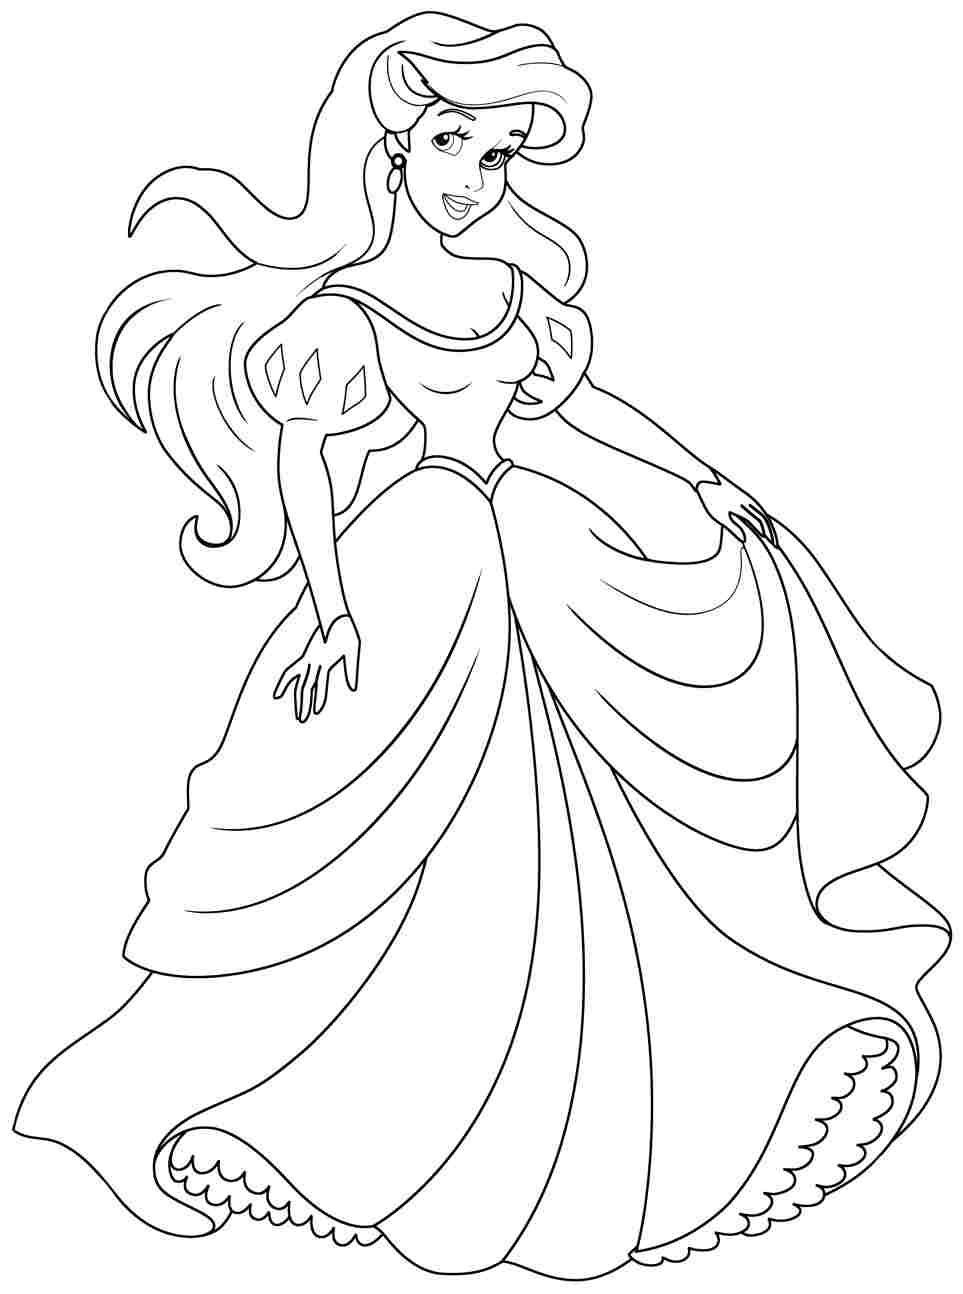 coloring pages disney princesses - ariel coloring pages to download and print for free